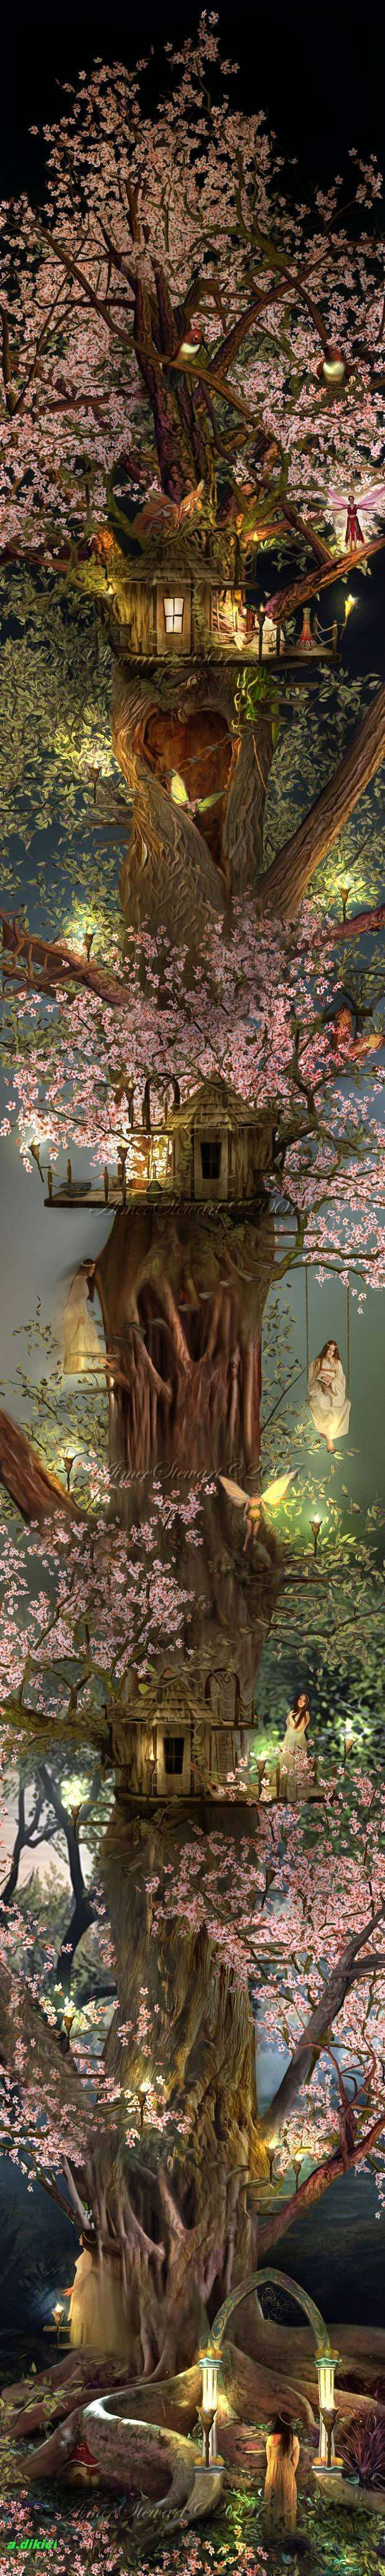 Enchanted fairy tree house here is a little faerie tree house linda - Fairy Lights And Tree